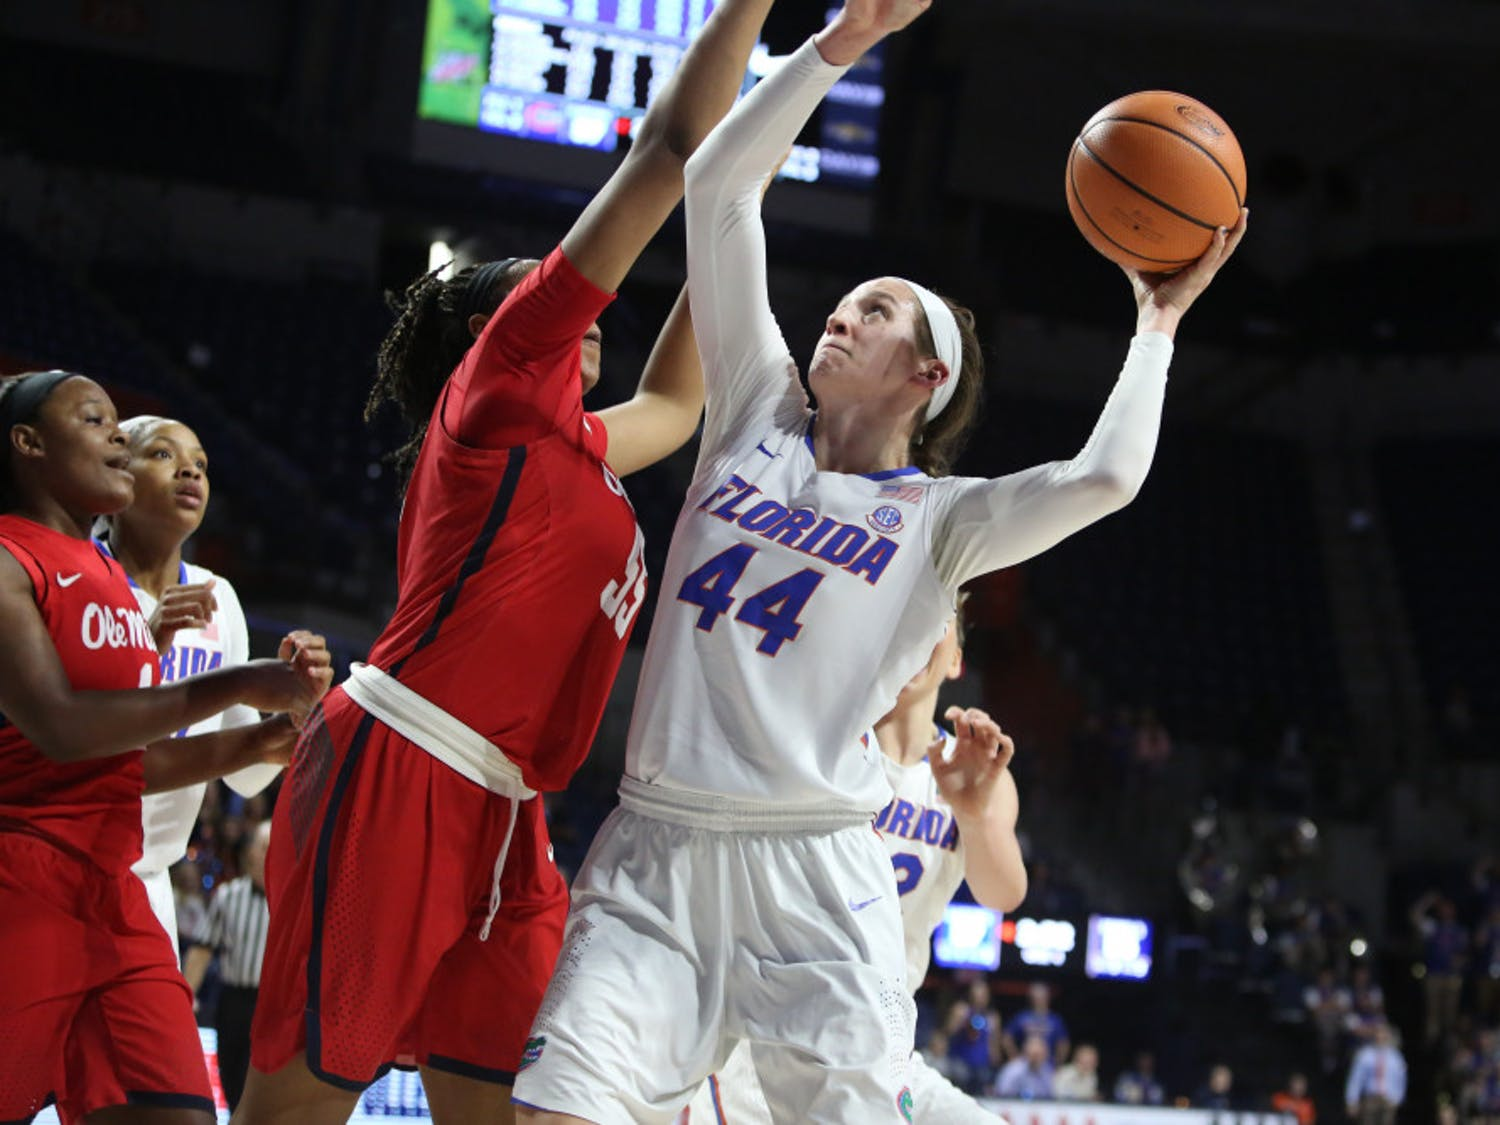 After losing its first five SEC games, the Florida women's basketball team is on a current two-game winning streak, defeating Ole Miss 61-60 on Sunday afternoon.